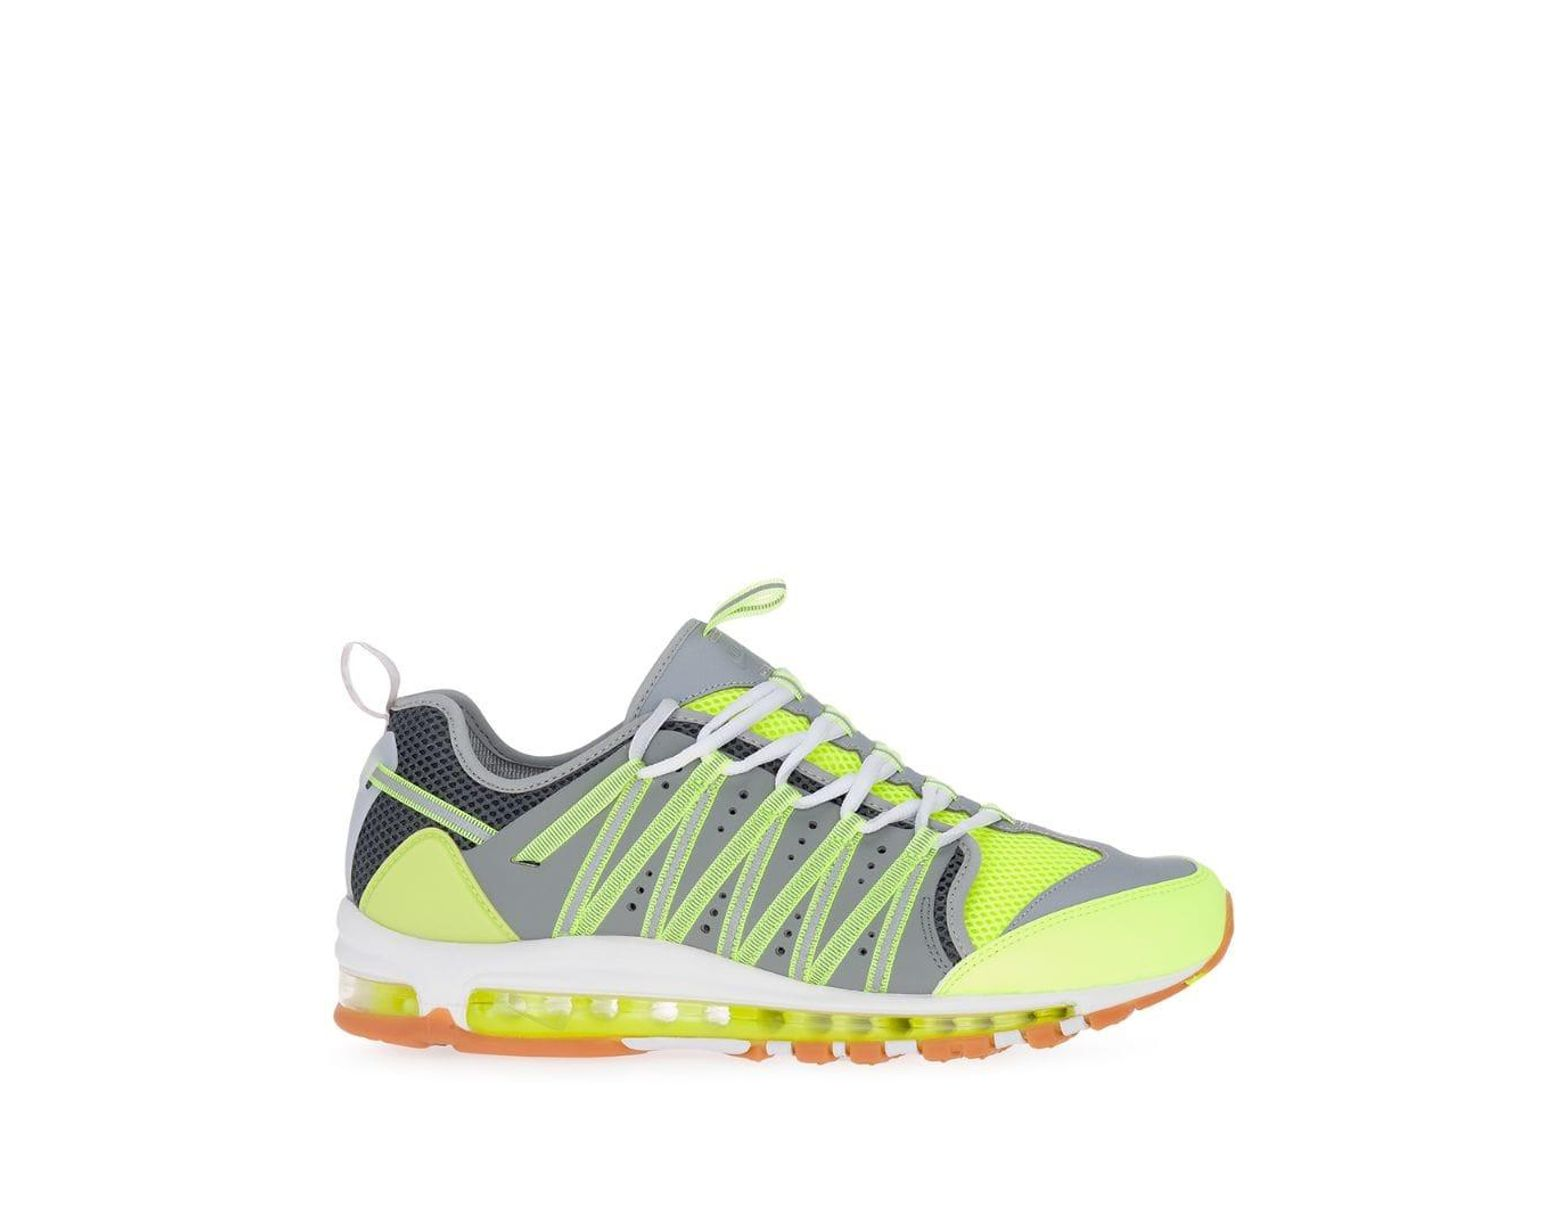 dbd65cf000 Nike X Clot Air Max Haven In Volt/grey in Gray for Men - Lyst